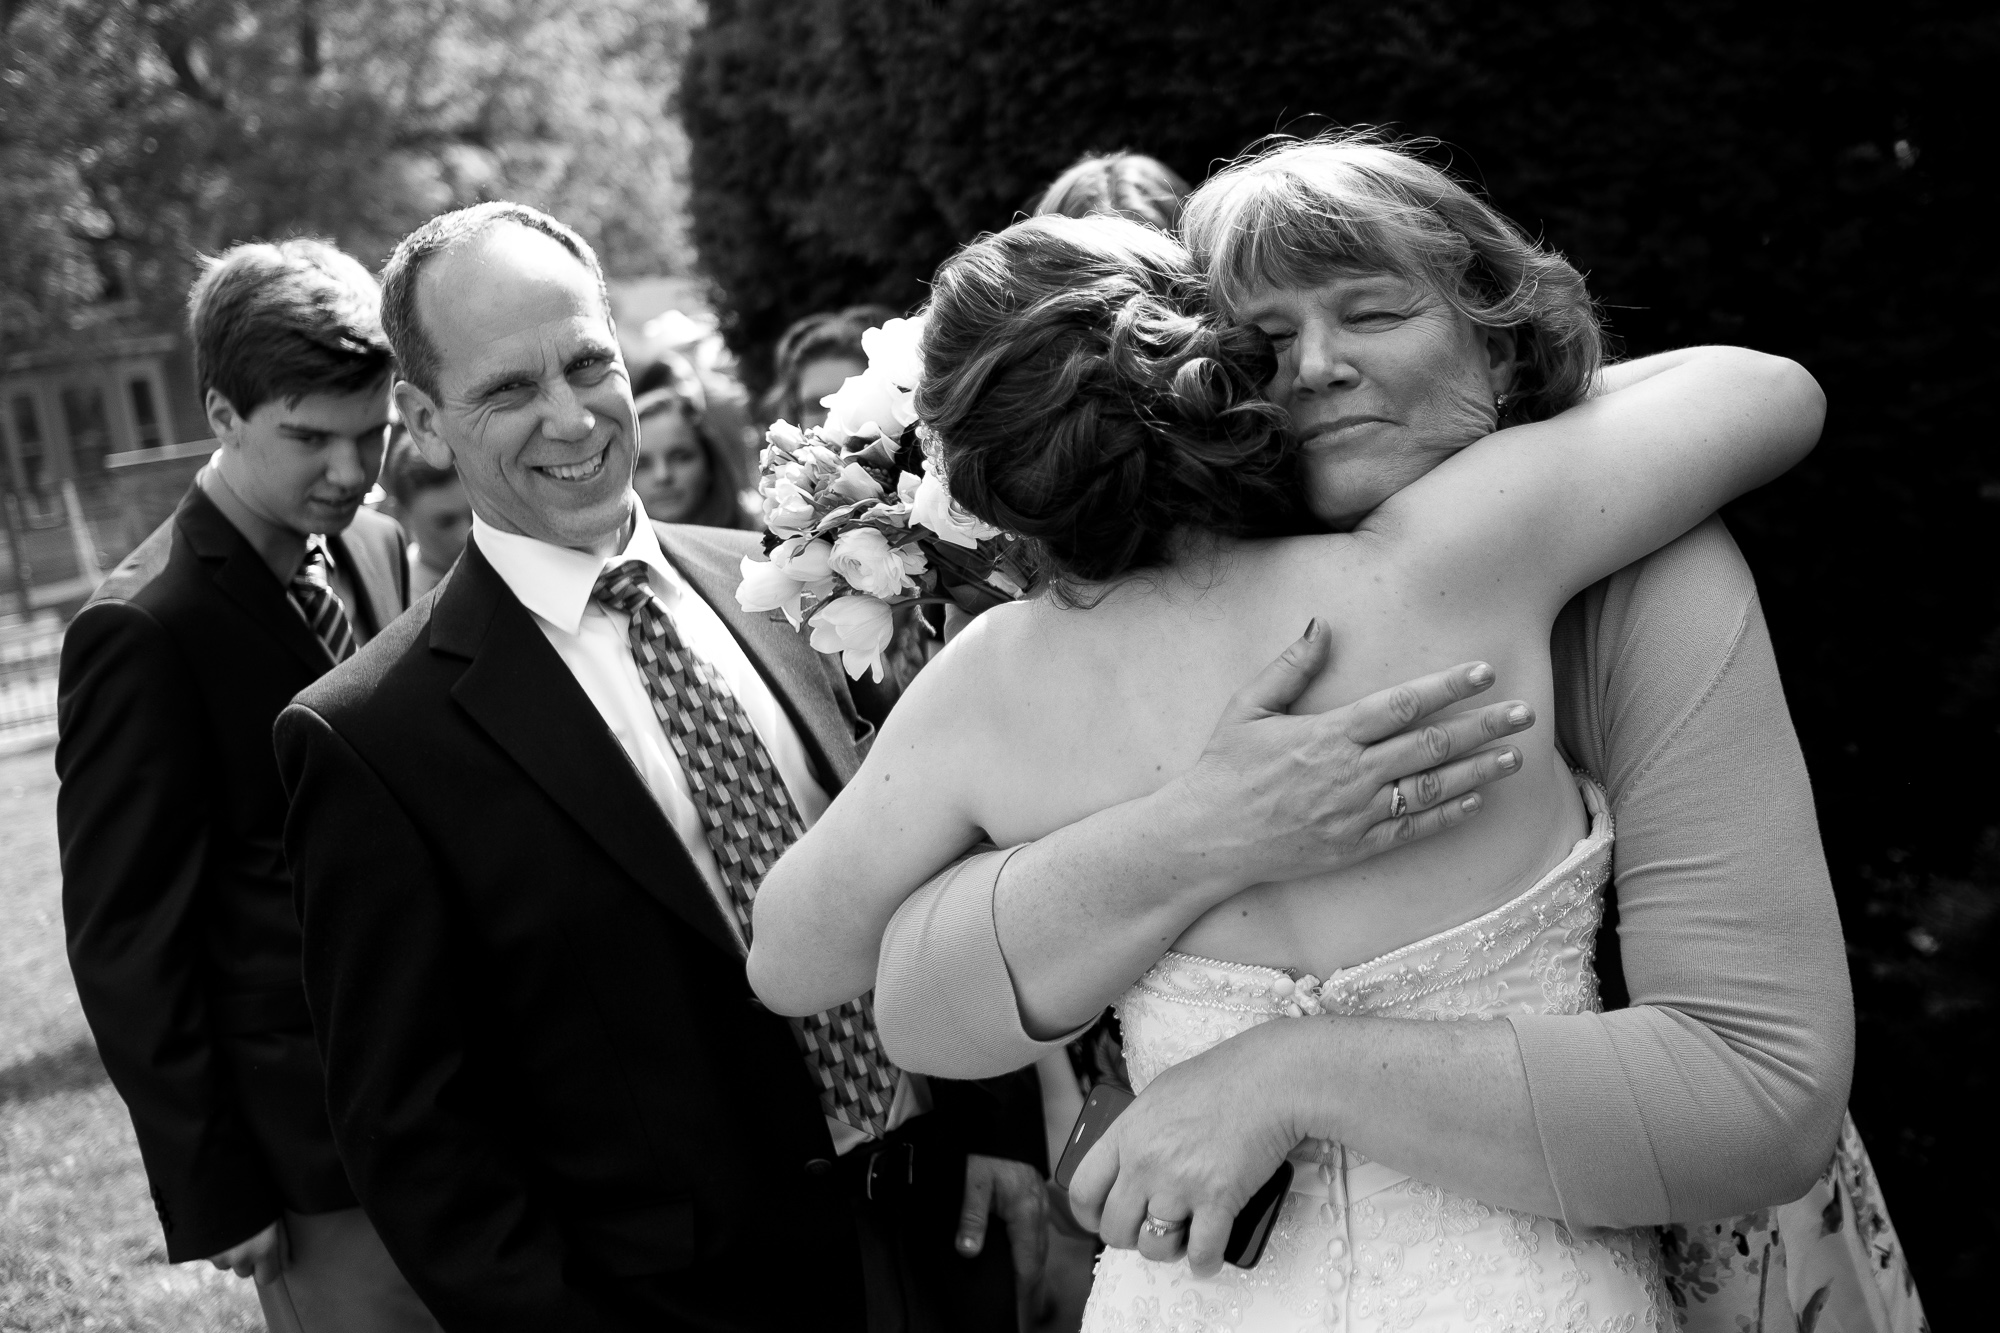 Jennifer greets friends and family after their wedding ceremony.